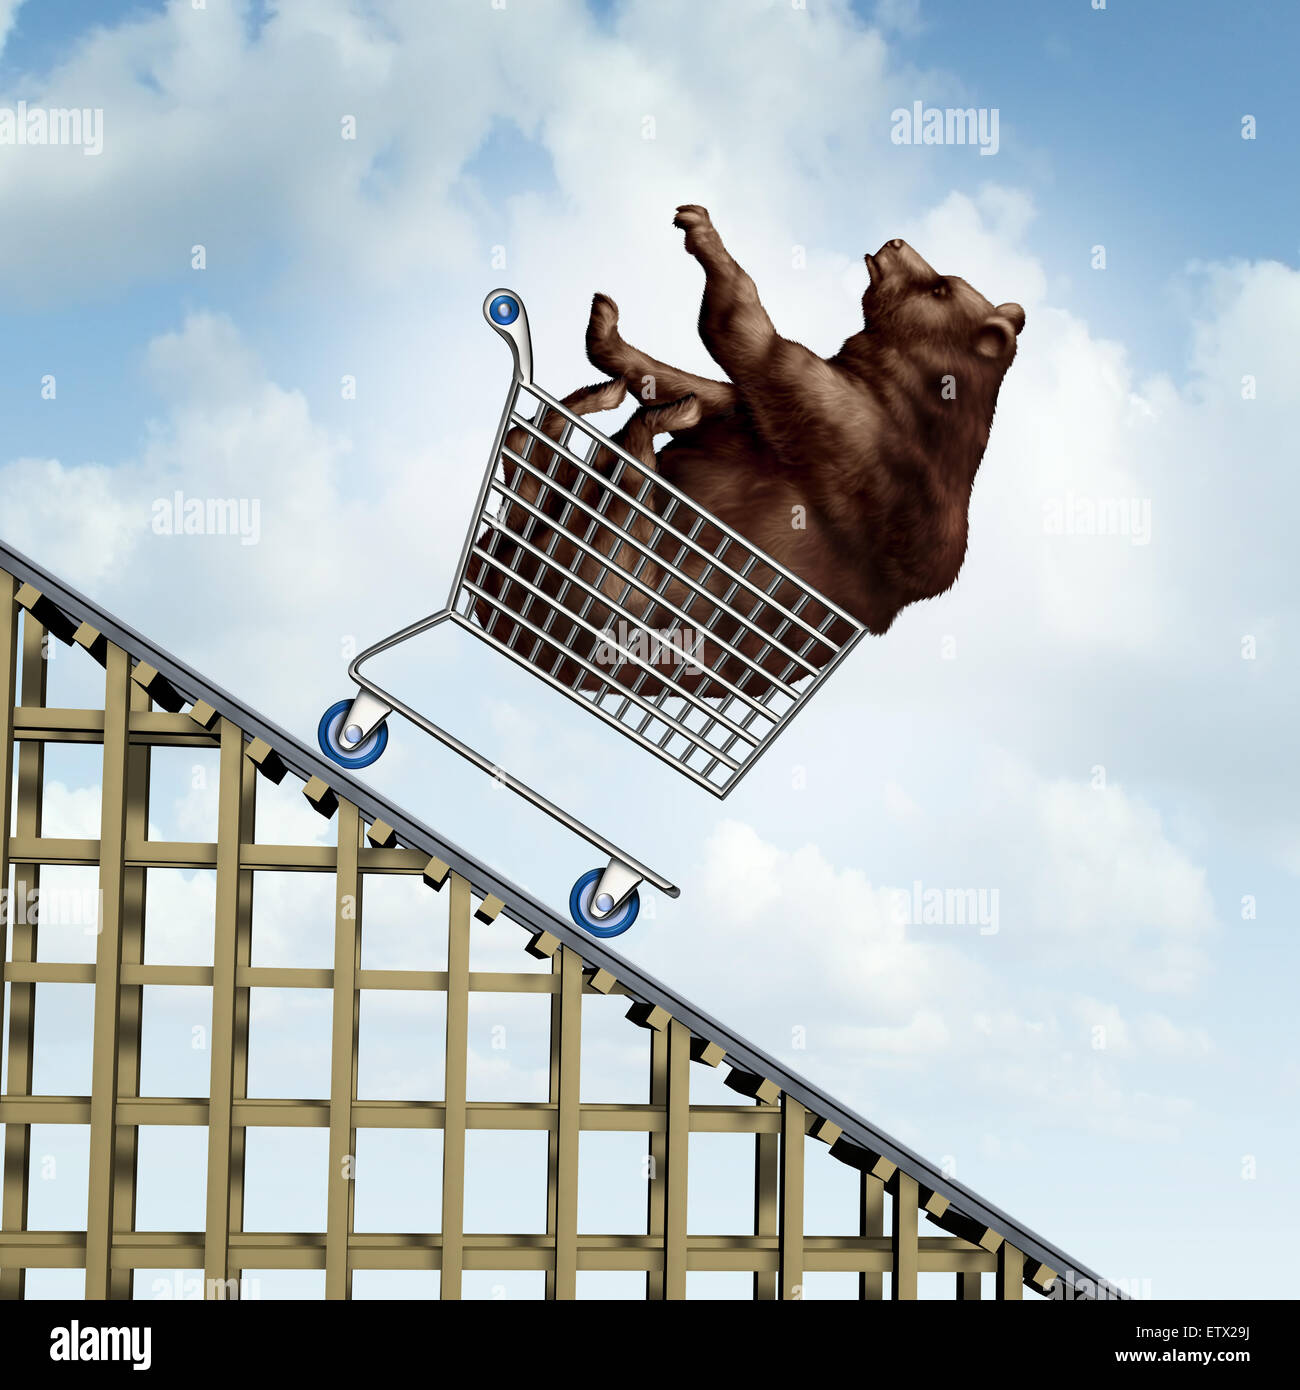 Stock market decline financial crisis concept as a bear in a stock market decline financial crisis concept as a bear in a shopping cart going down on a roller coaster structure as an investment metaphor and symbol for biocorpaavc Image collections